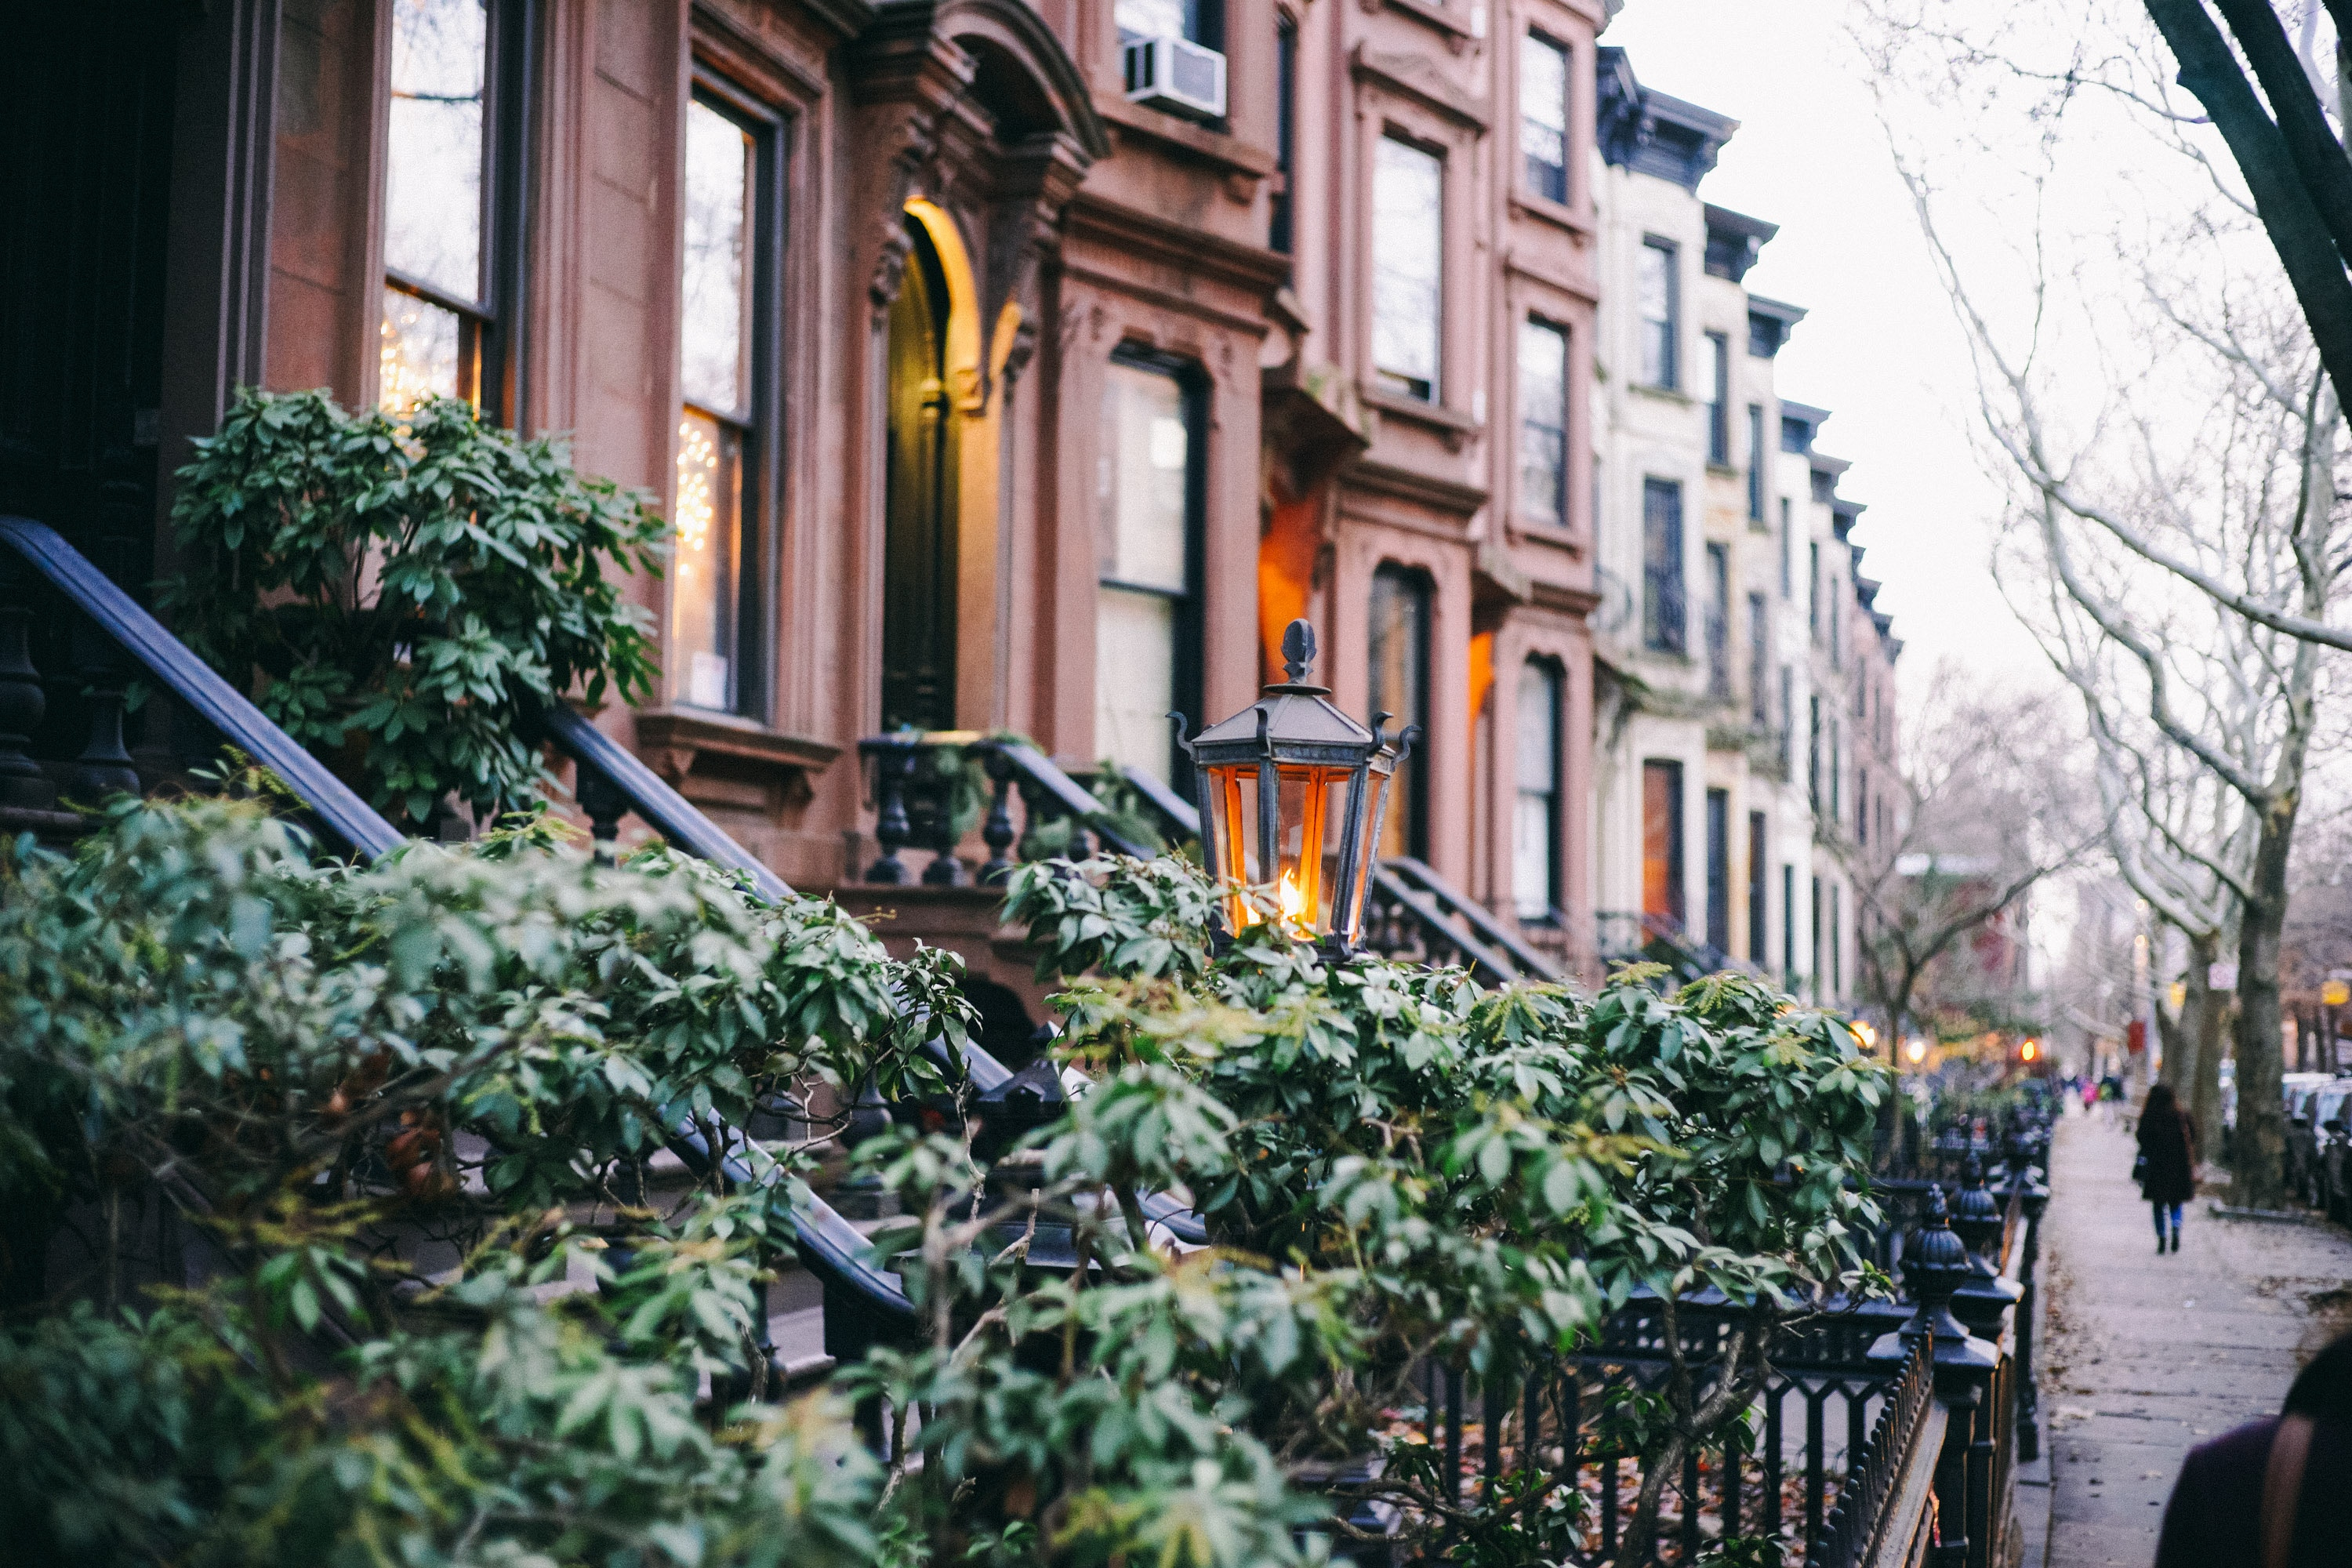 A view of a street in Park Slope, Brooklyn. - something you will see as soon as you start preparing for your local moving project